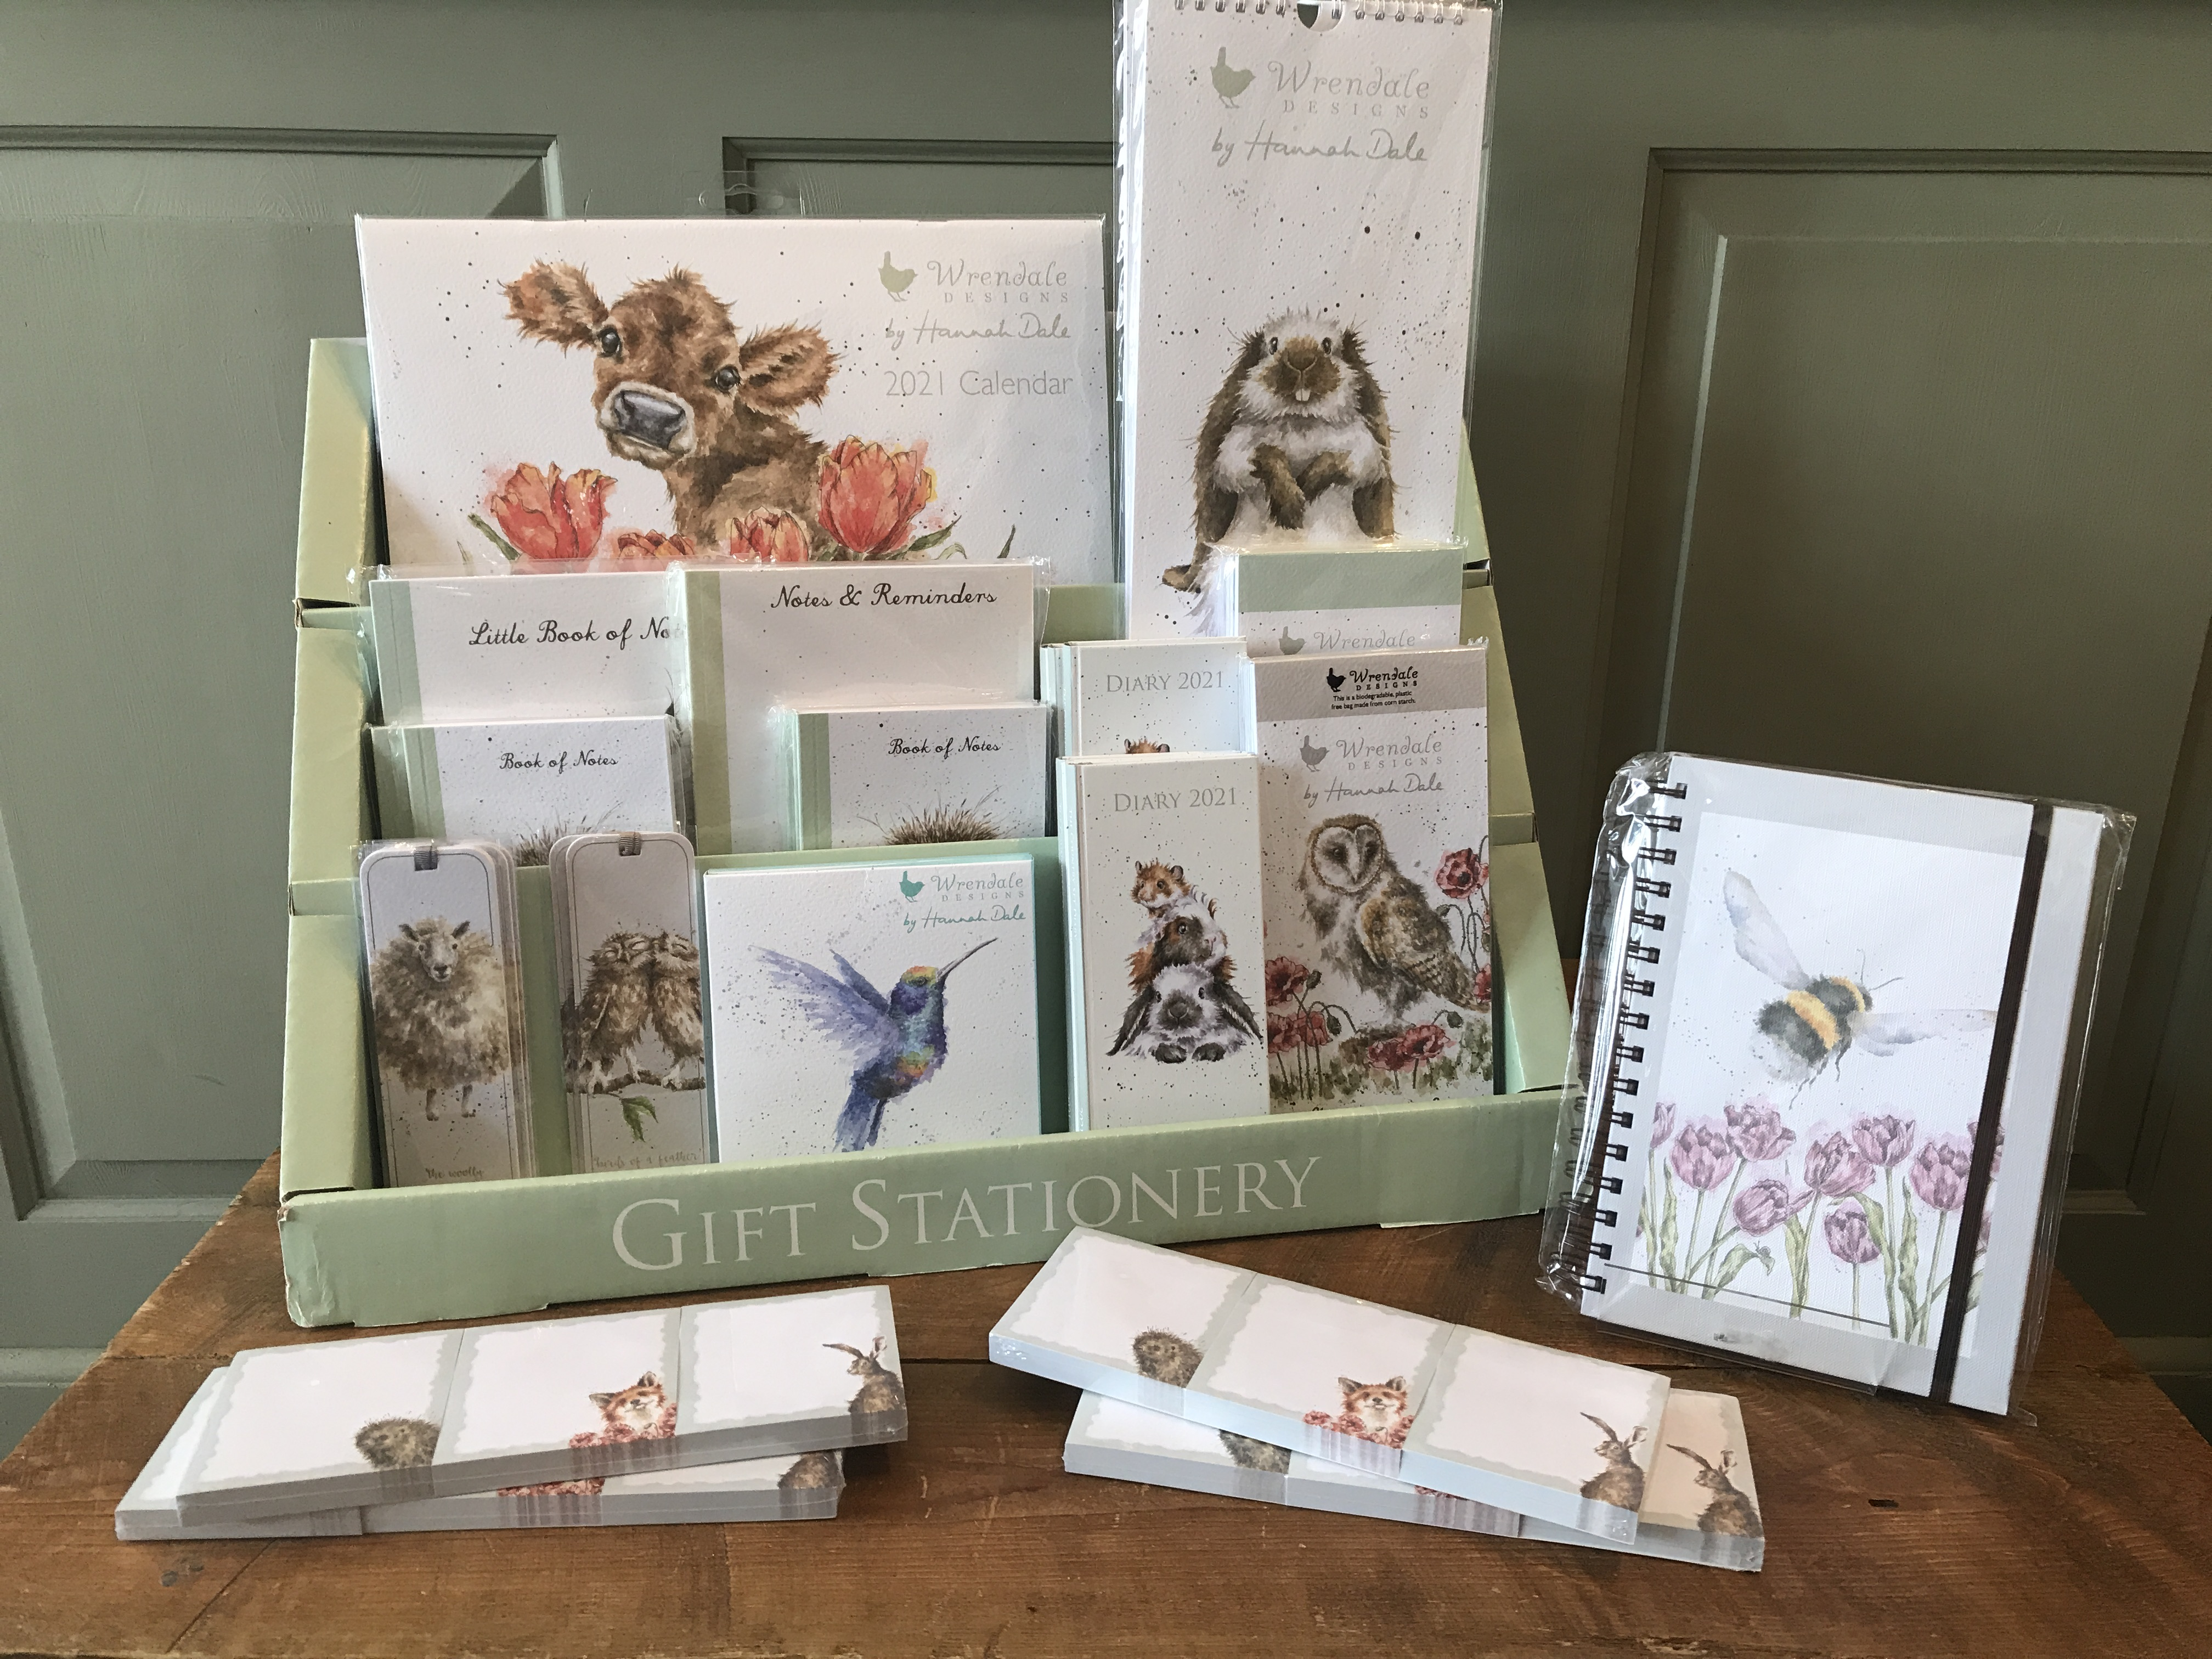 Wrendale Stationery